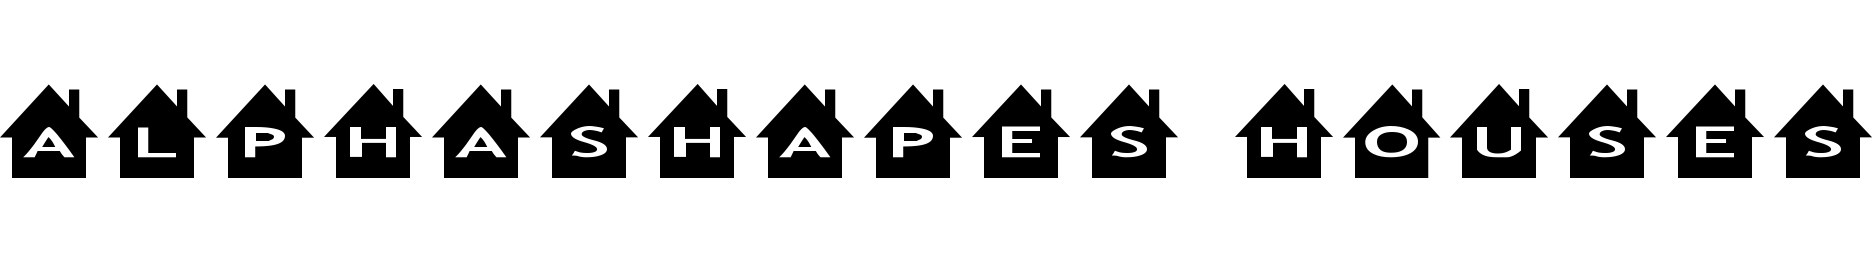 AlphaShapes houses